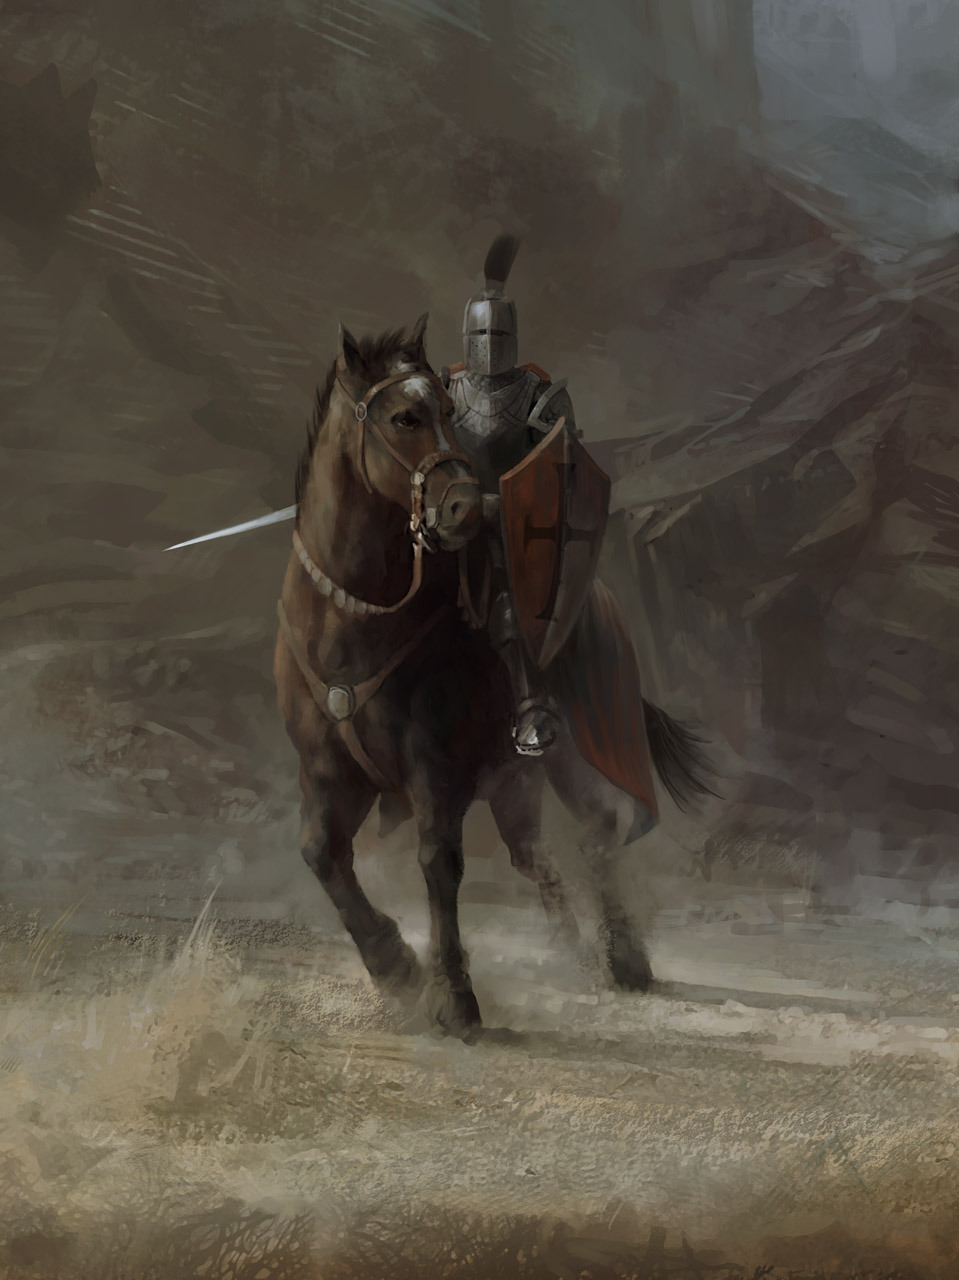 Medieval Knight On Horse Medieval knigh